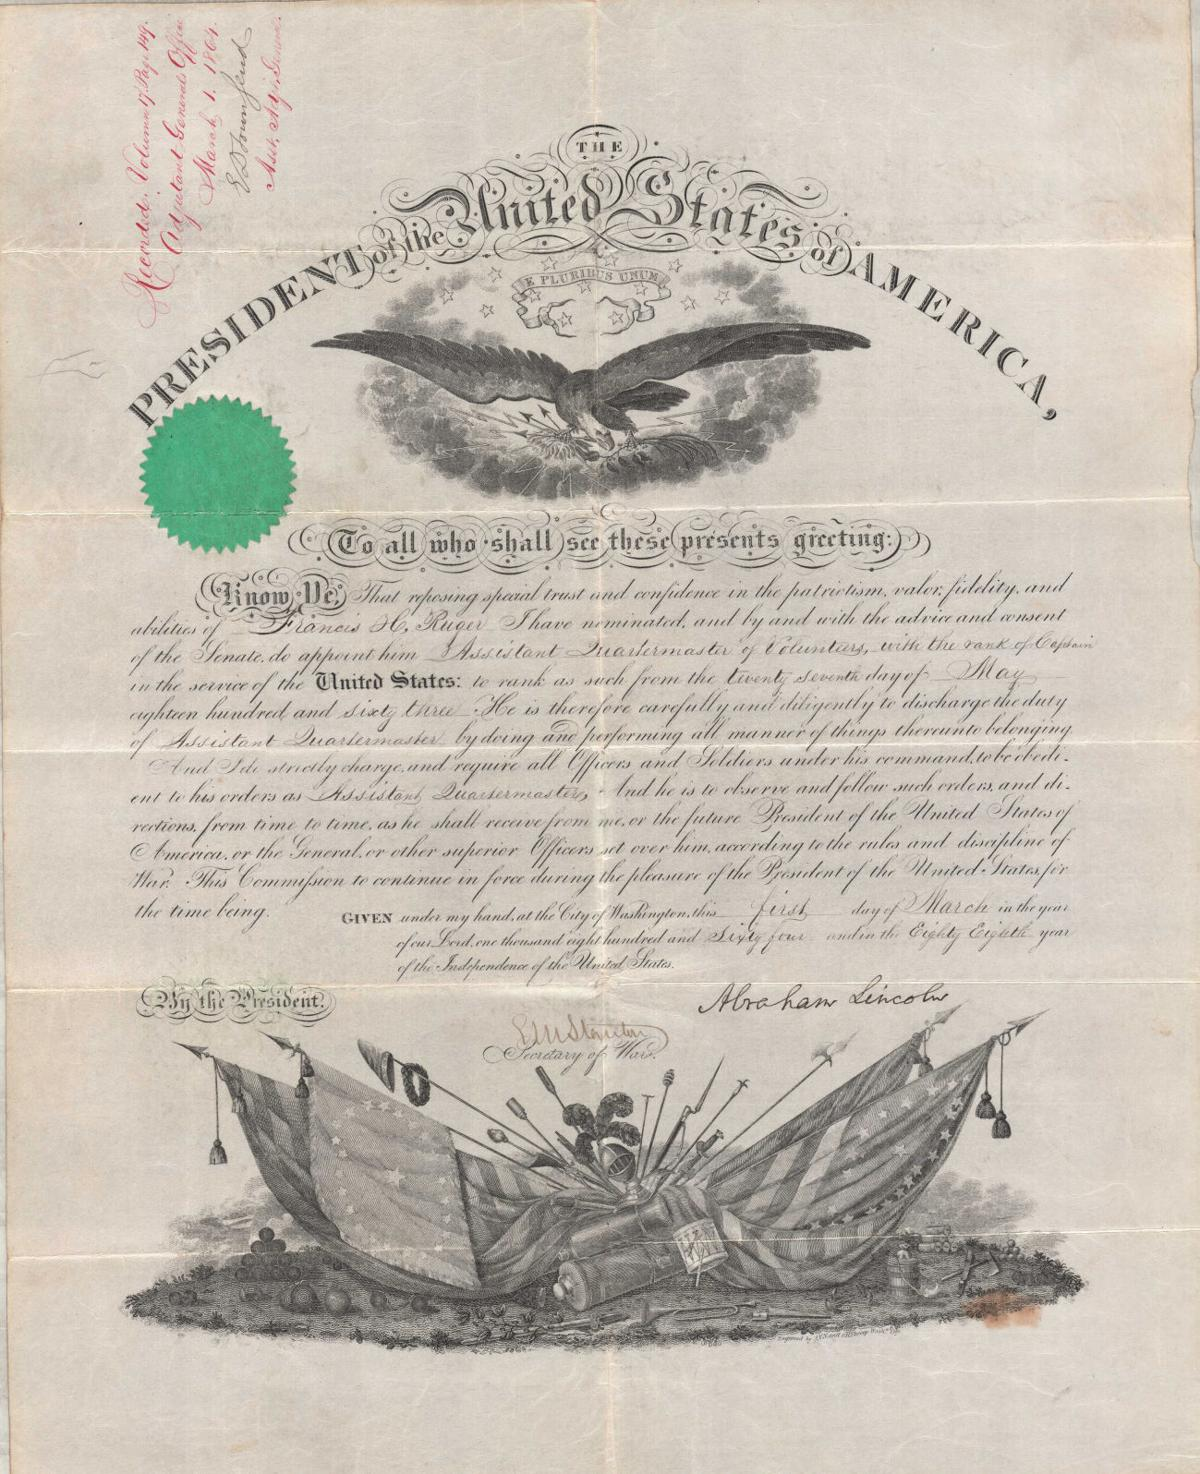 Lincoln Document 1864